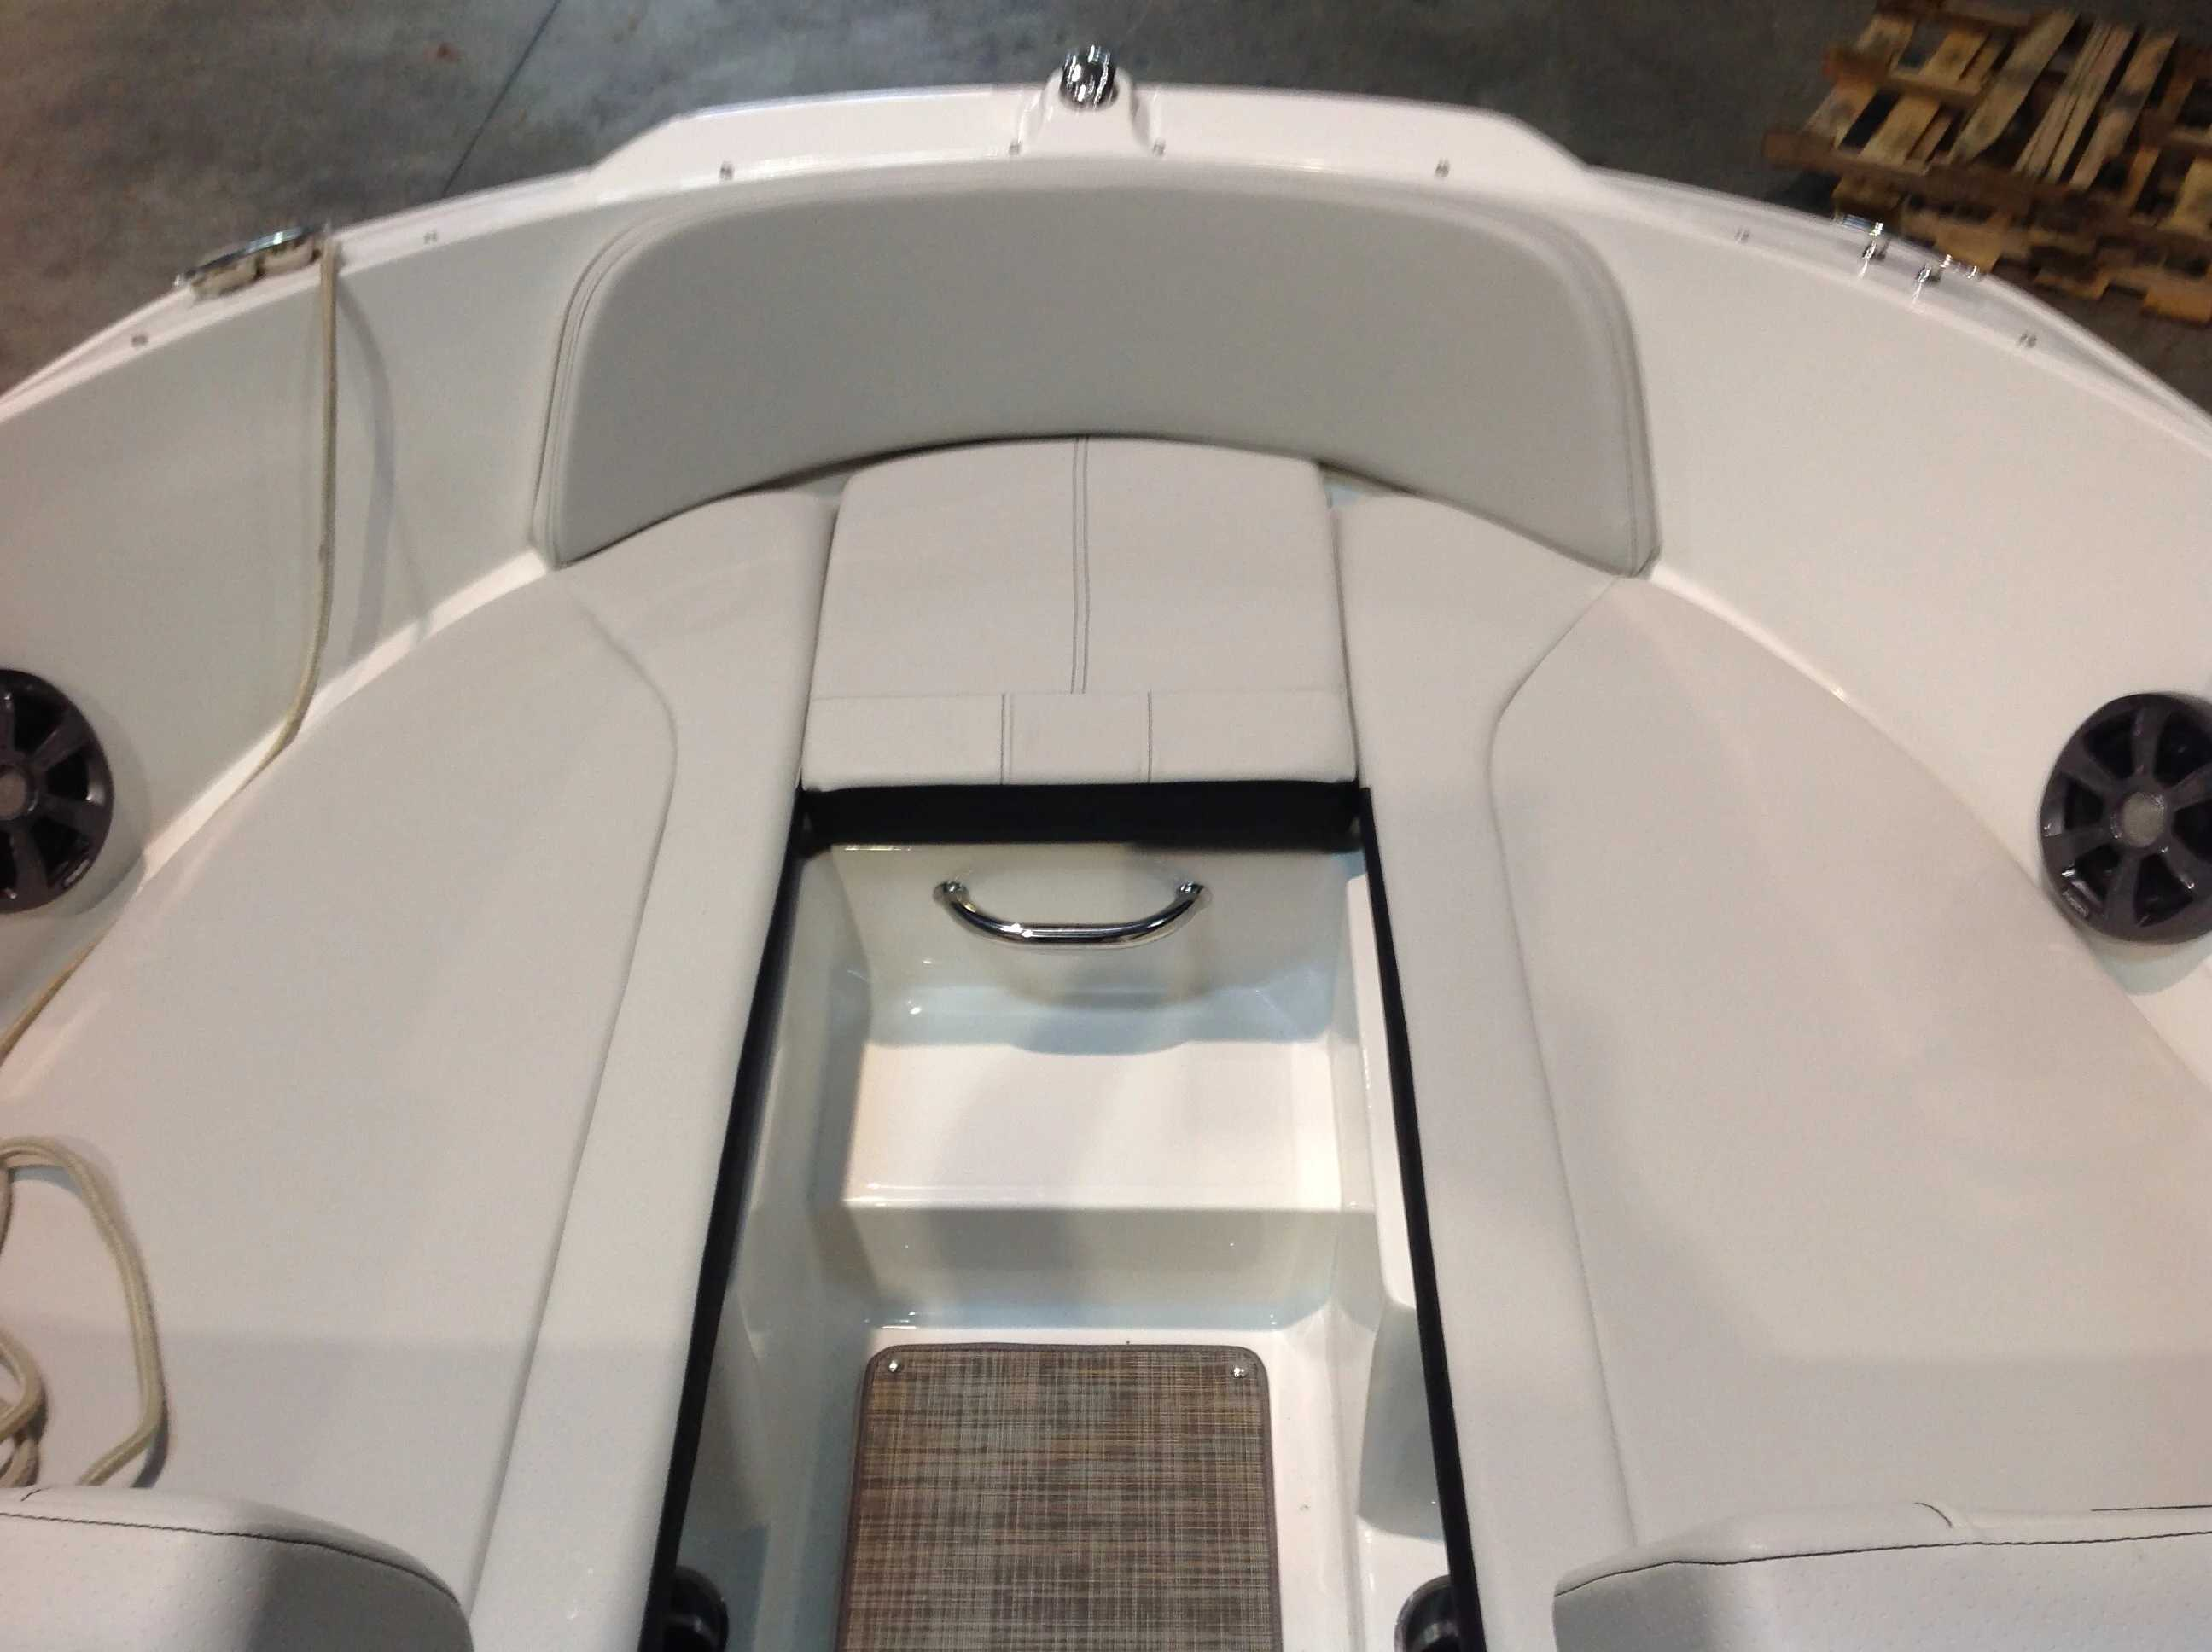 2021 Sea Ray boat for sale, model of the boat is 210 SPX & Image # 4 of 12